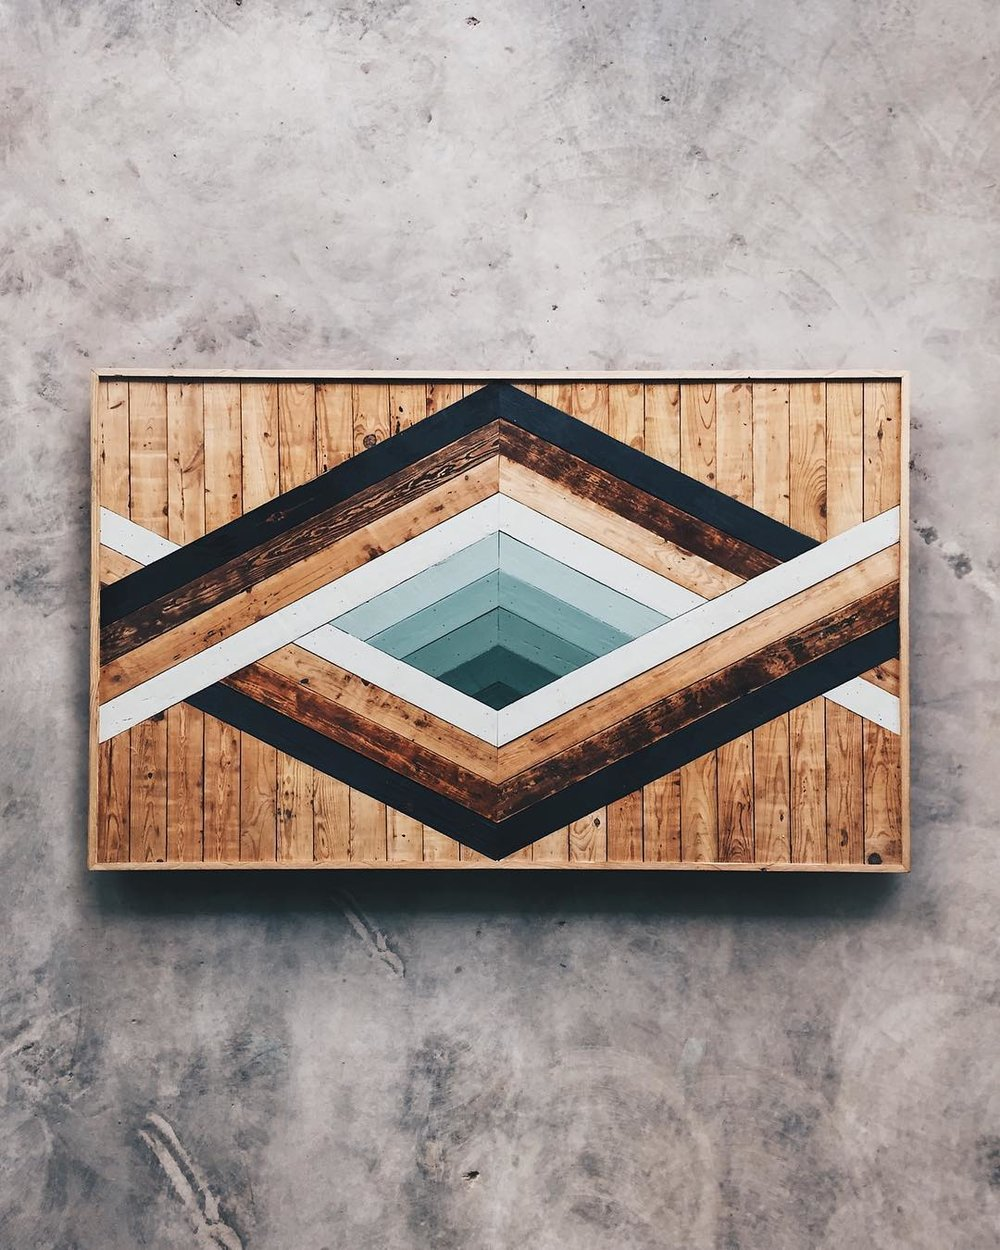 Layman Drug Co. - Wall Art   Made from reclaimed house wood from Nashville, TN